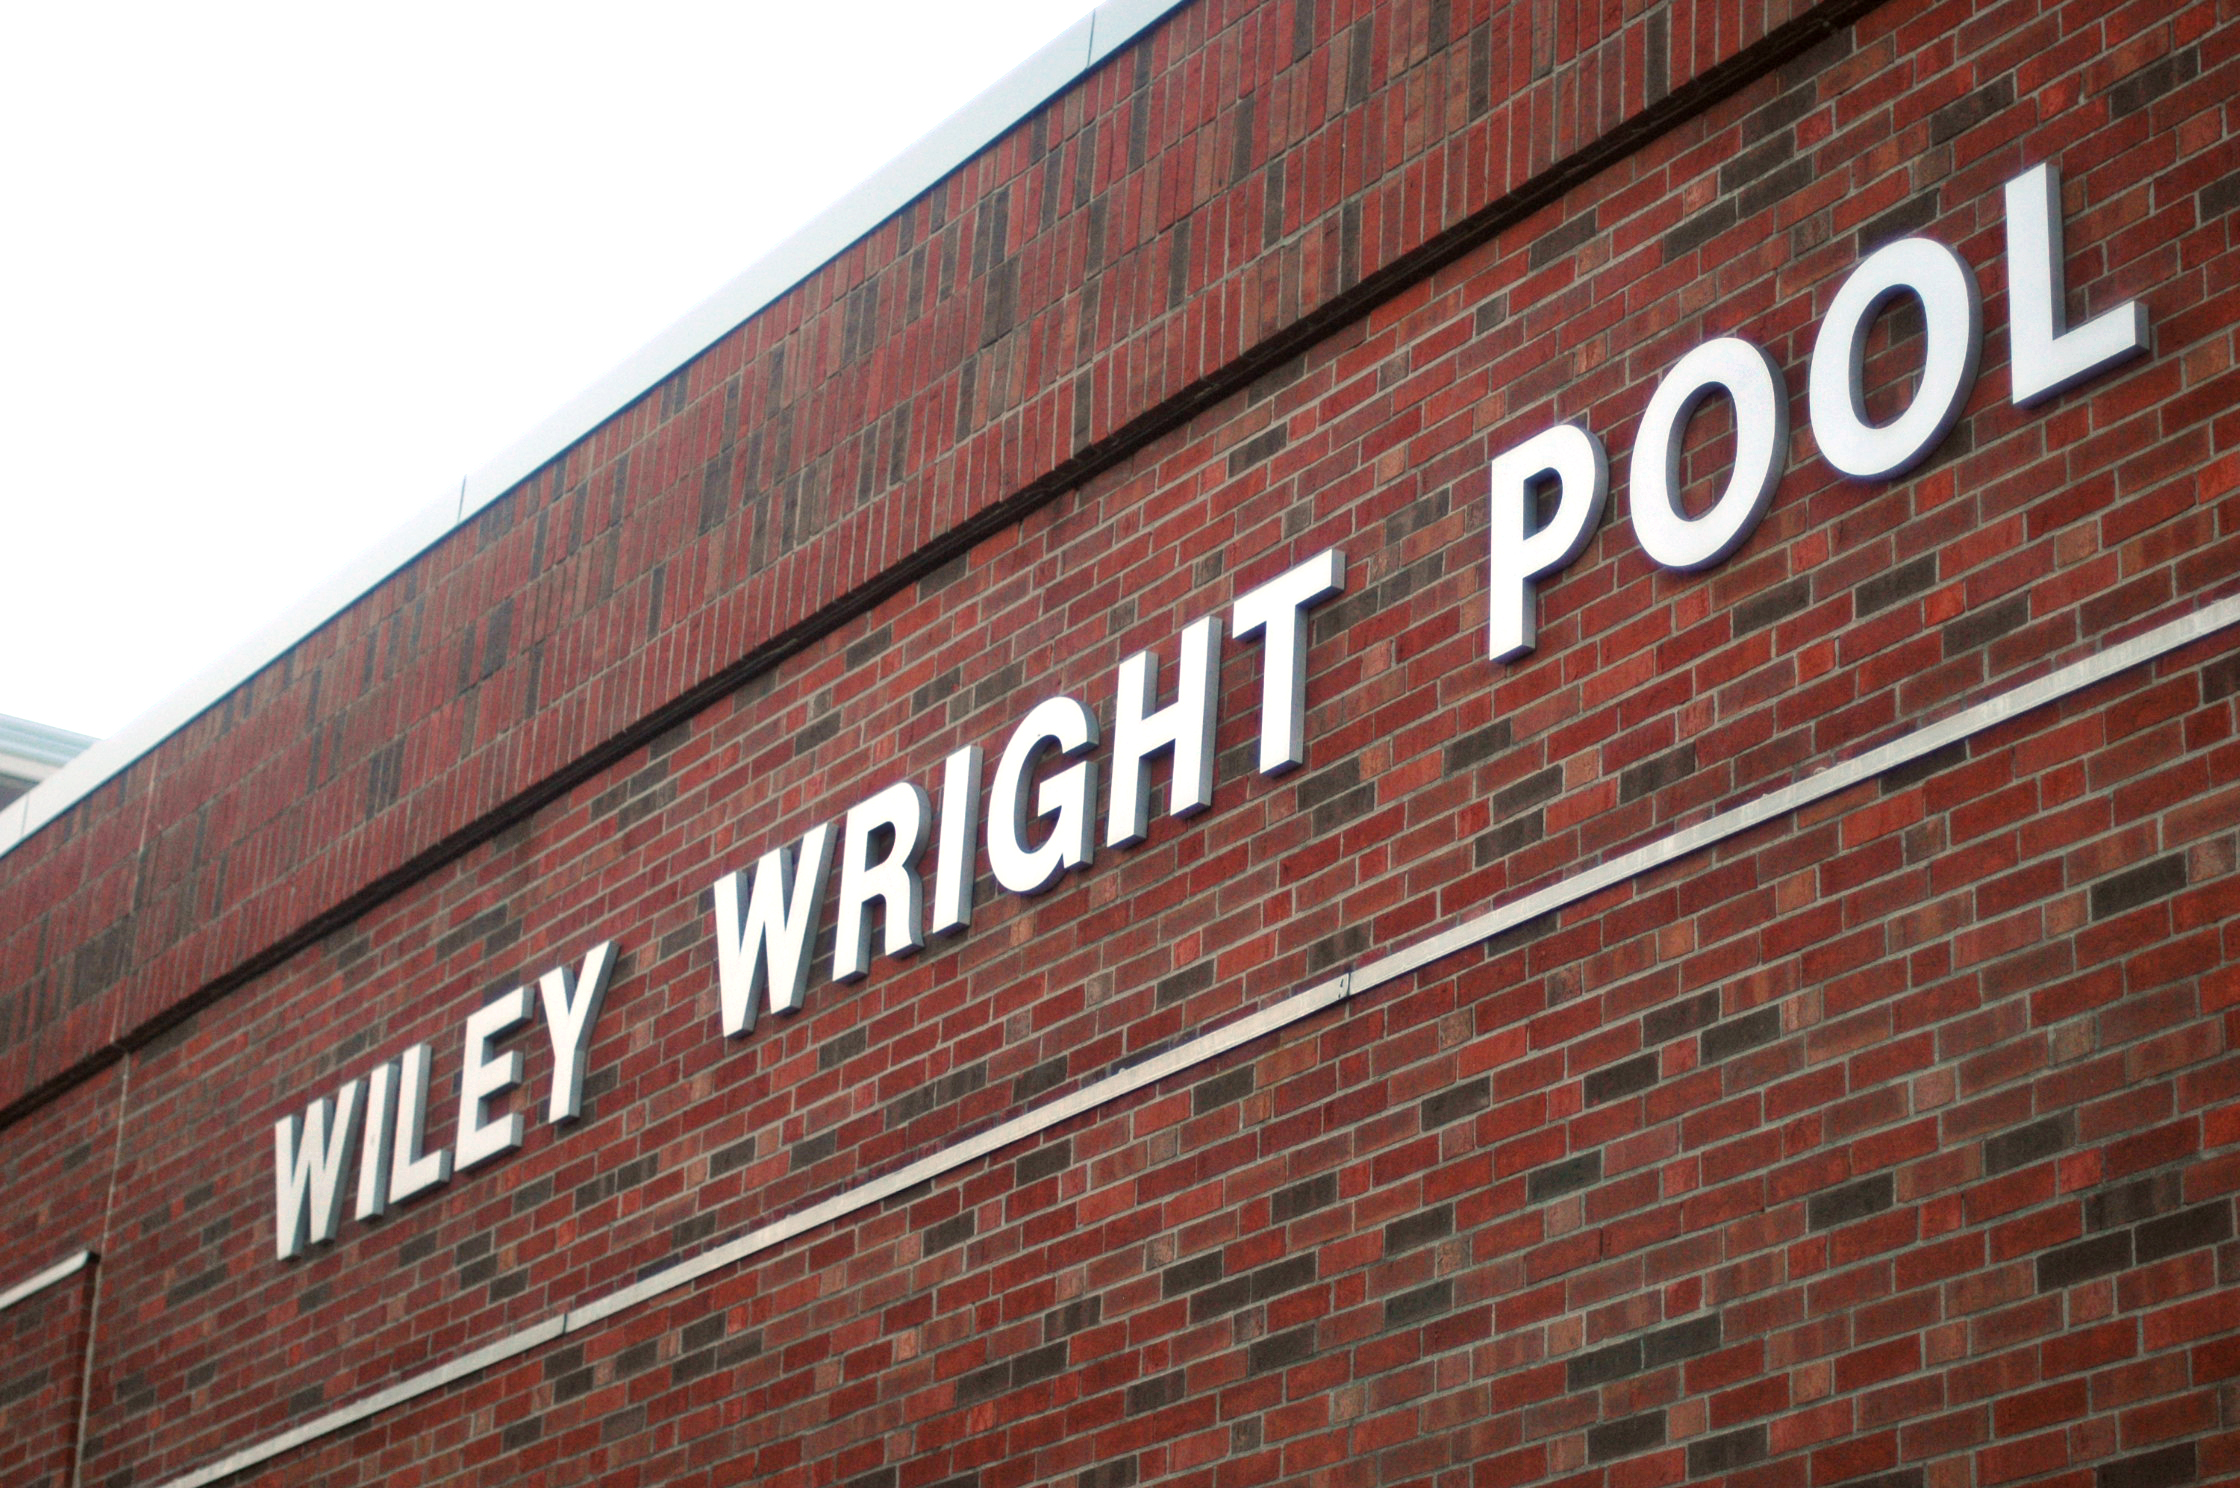 Eastipedia: Wiley Wright Swimming Pool